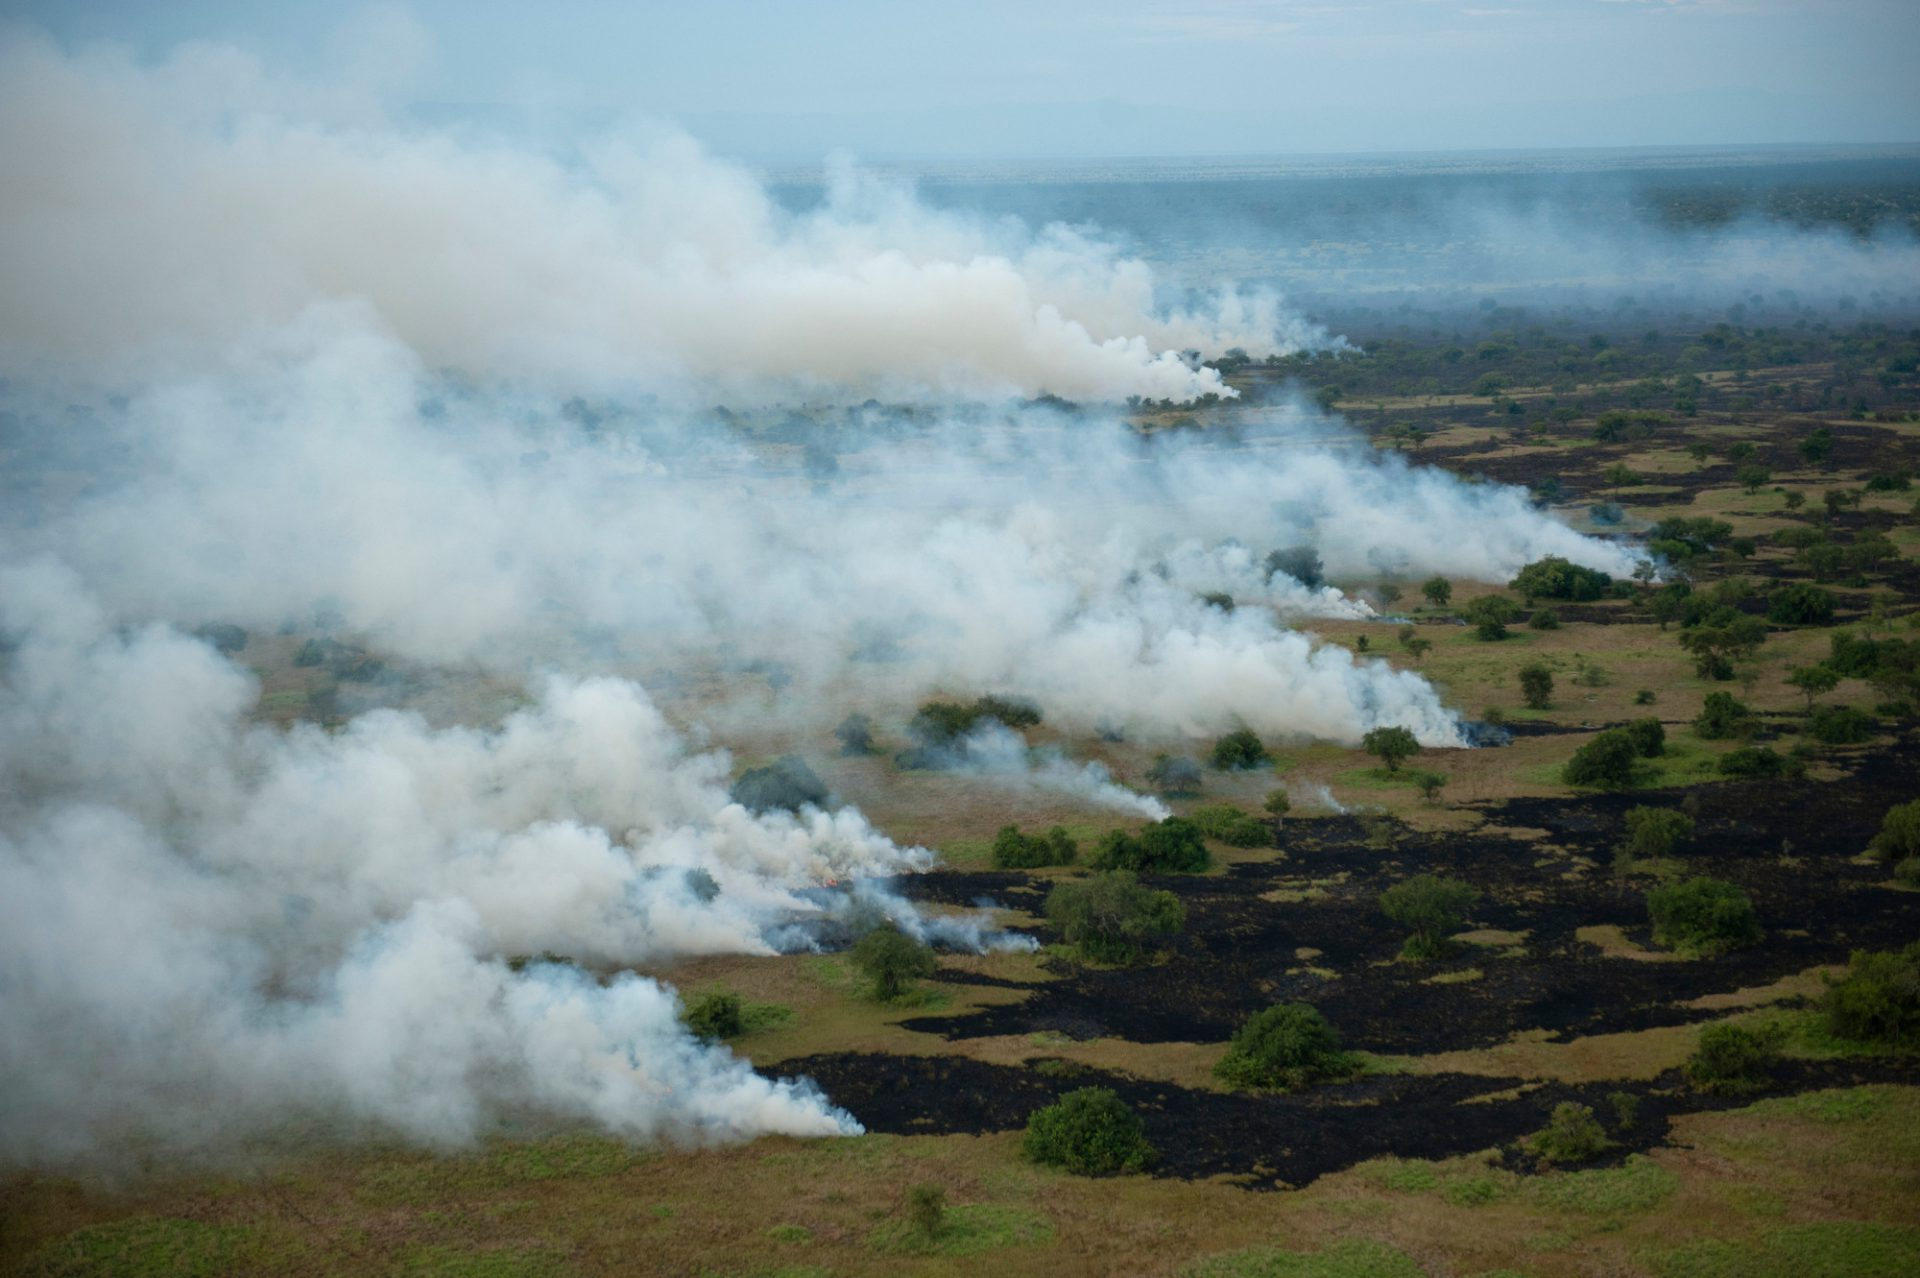 Photo: A controlled burn in the Semliki Wildlife Reserve.